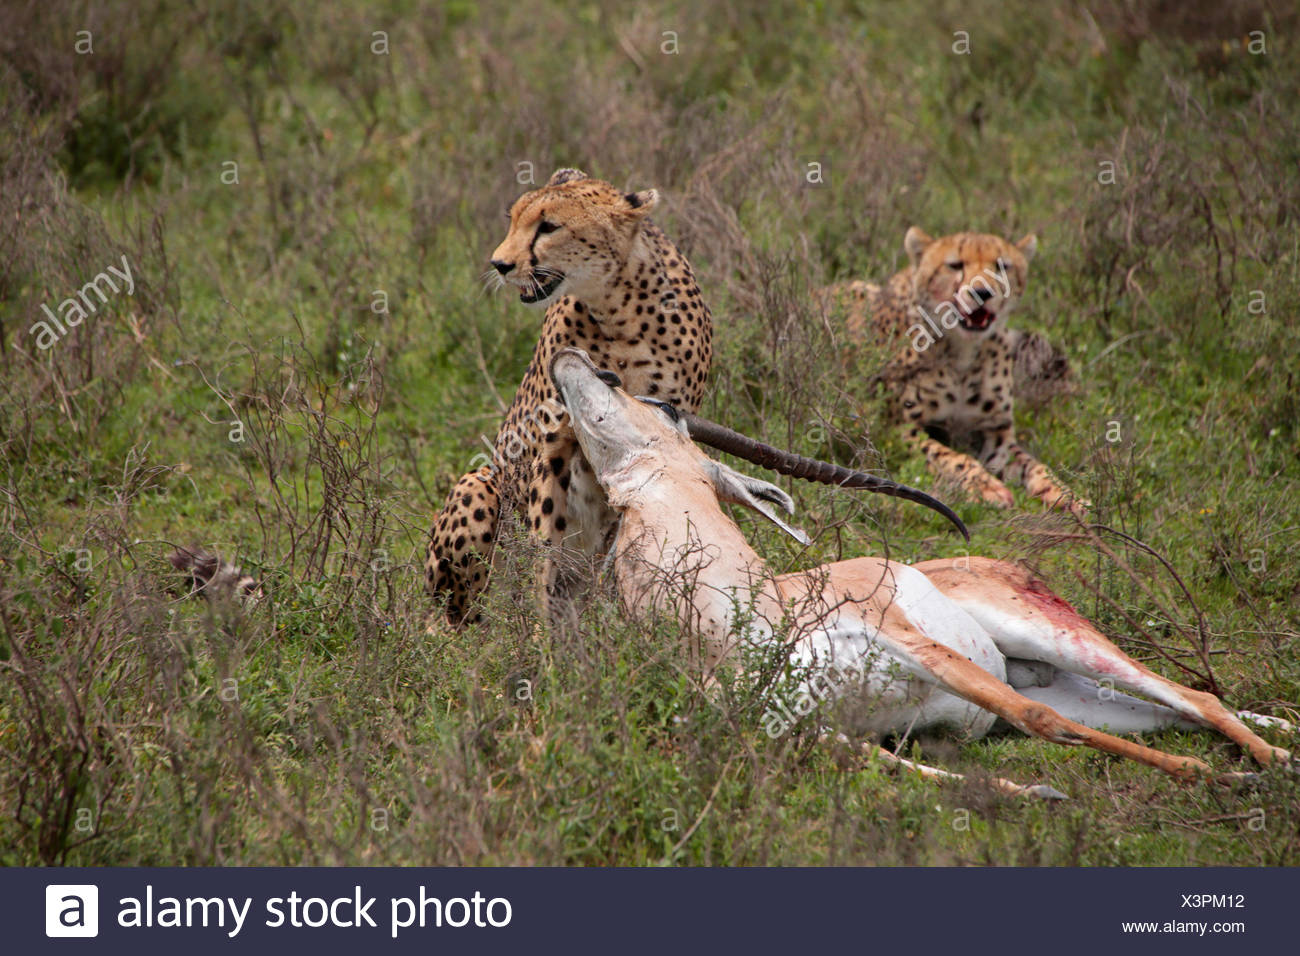 cheetah (Acinonyx jubatus), two cheetahs with caught Grant's gazelle, Tanzania, Serengeti National Park - Stock Image